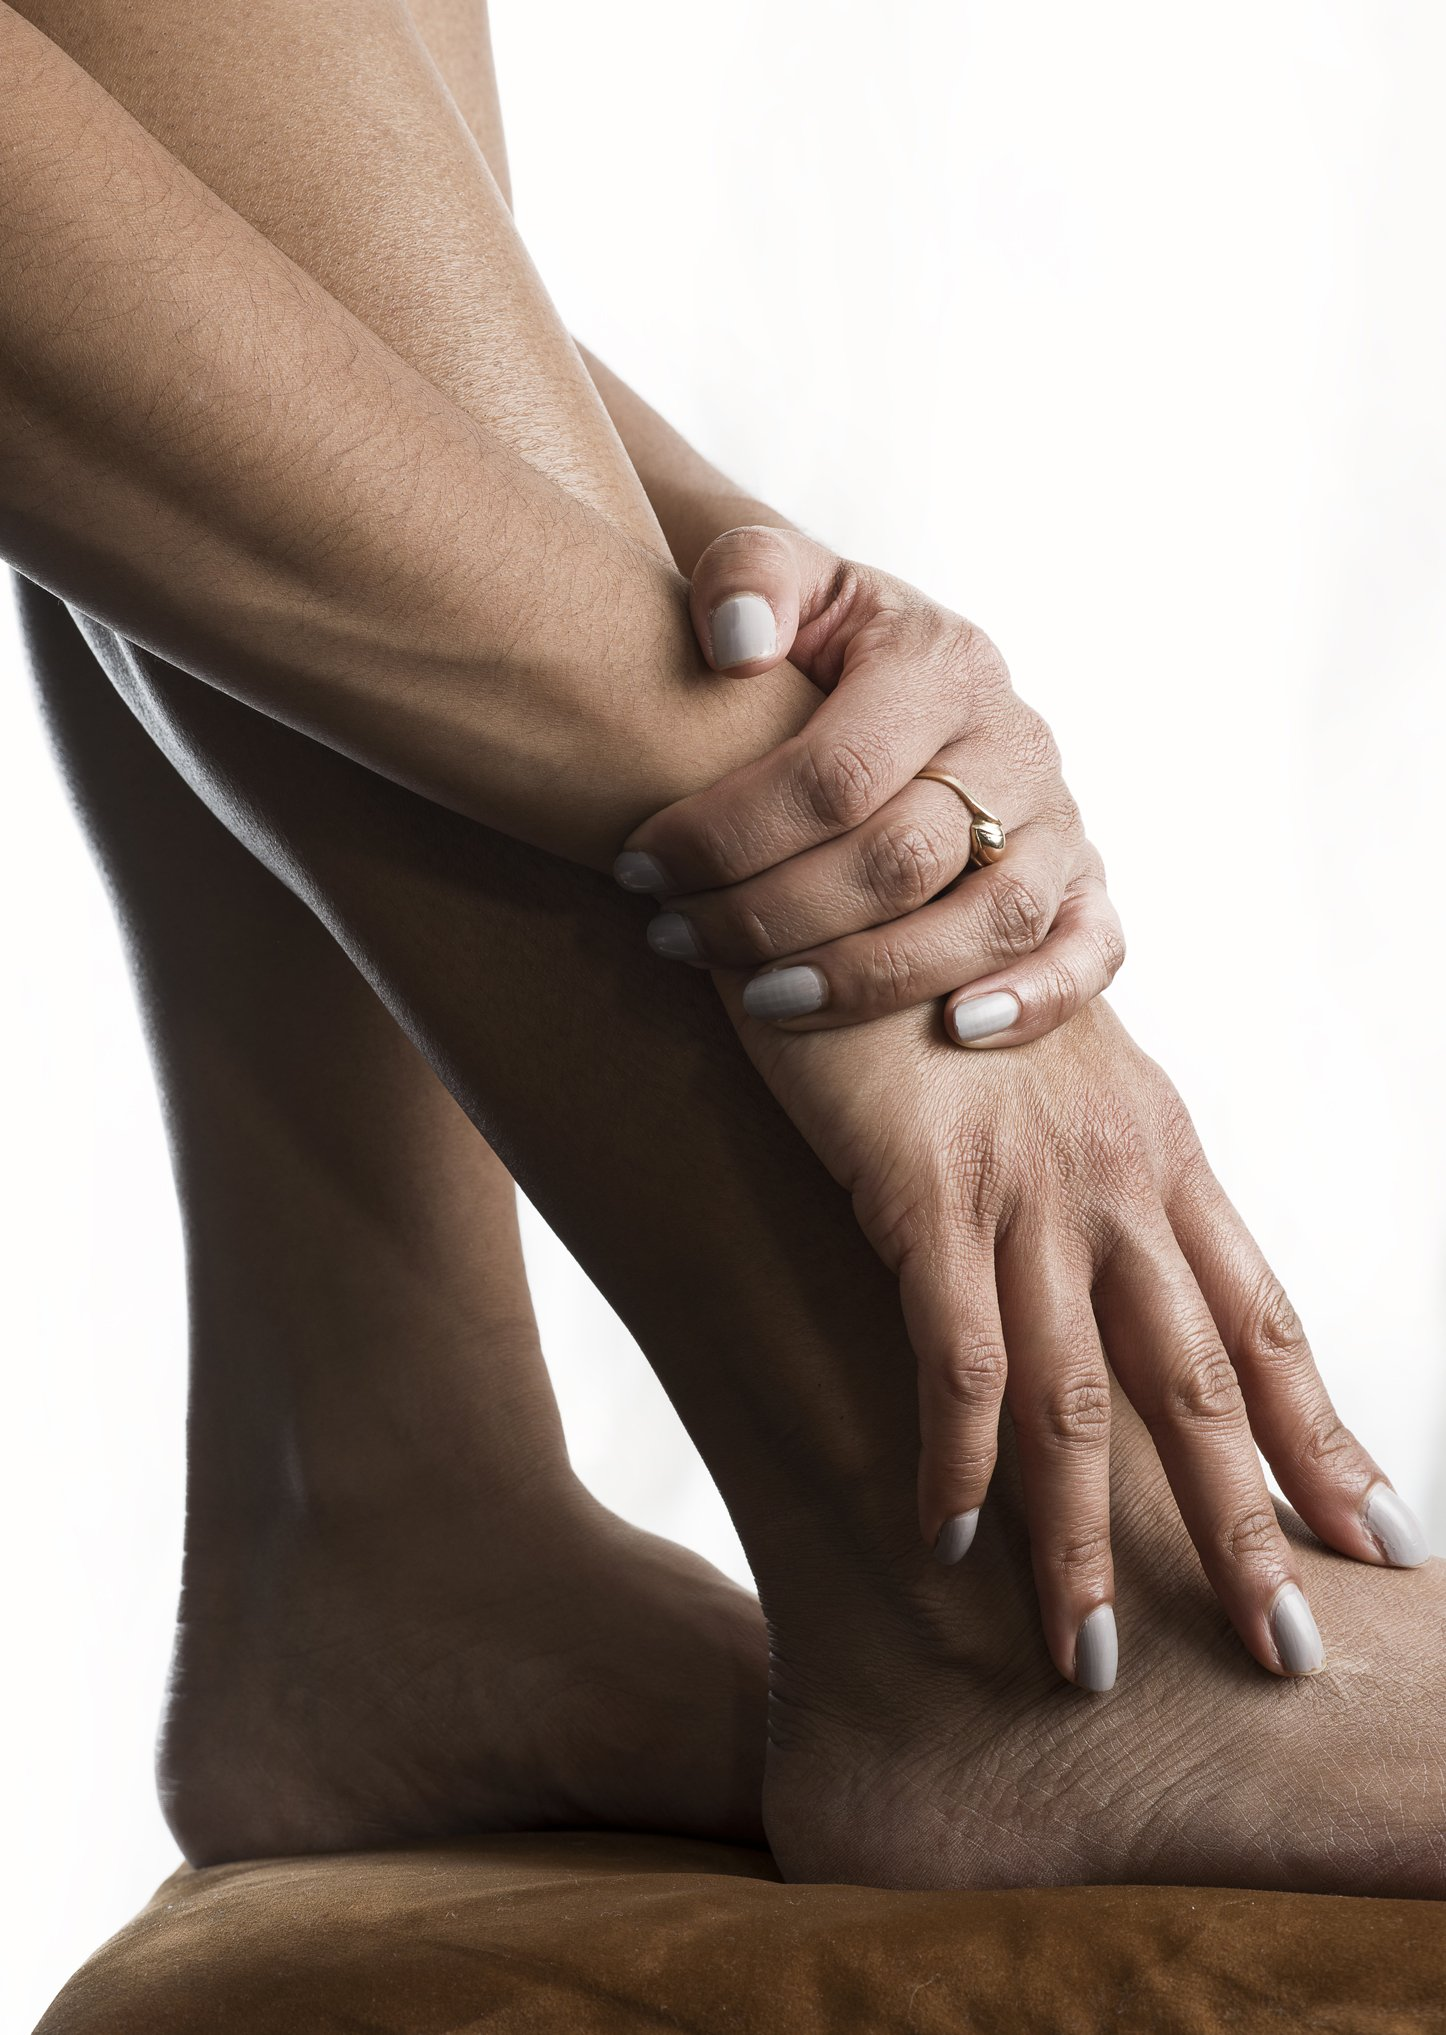 hands-on-ankles_4460x4460.jpg